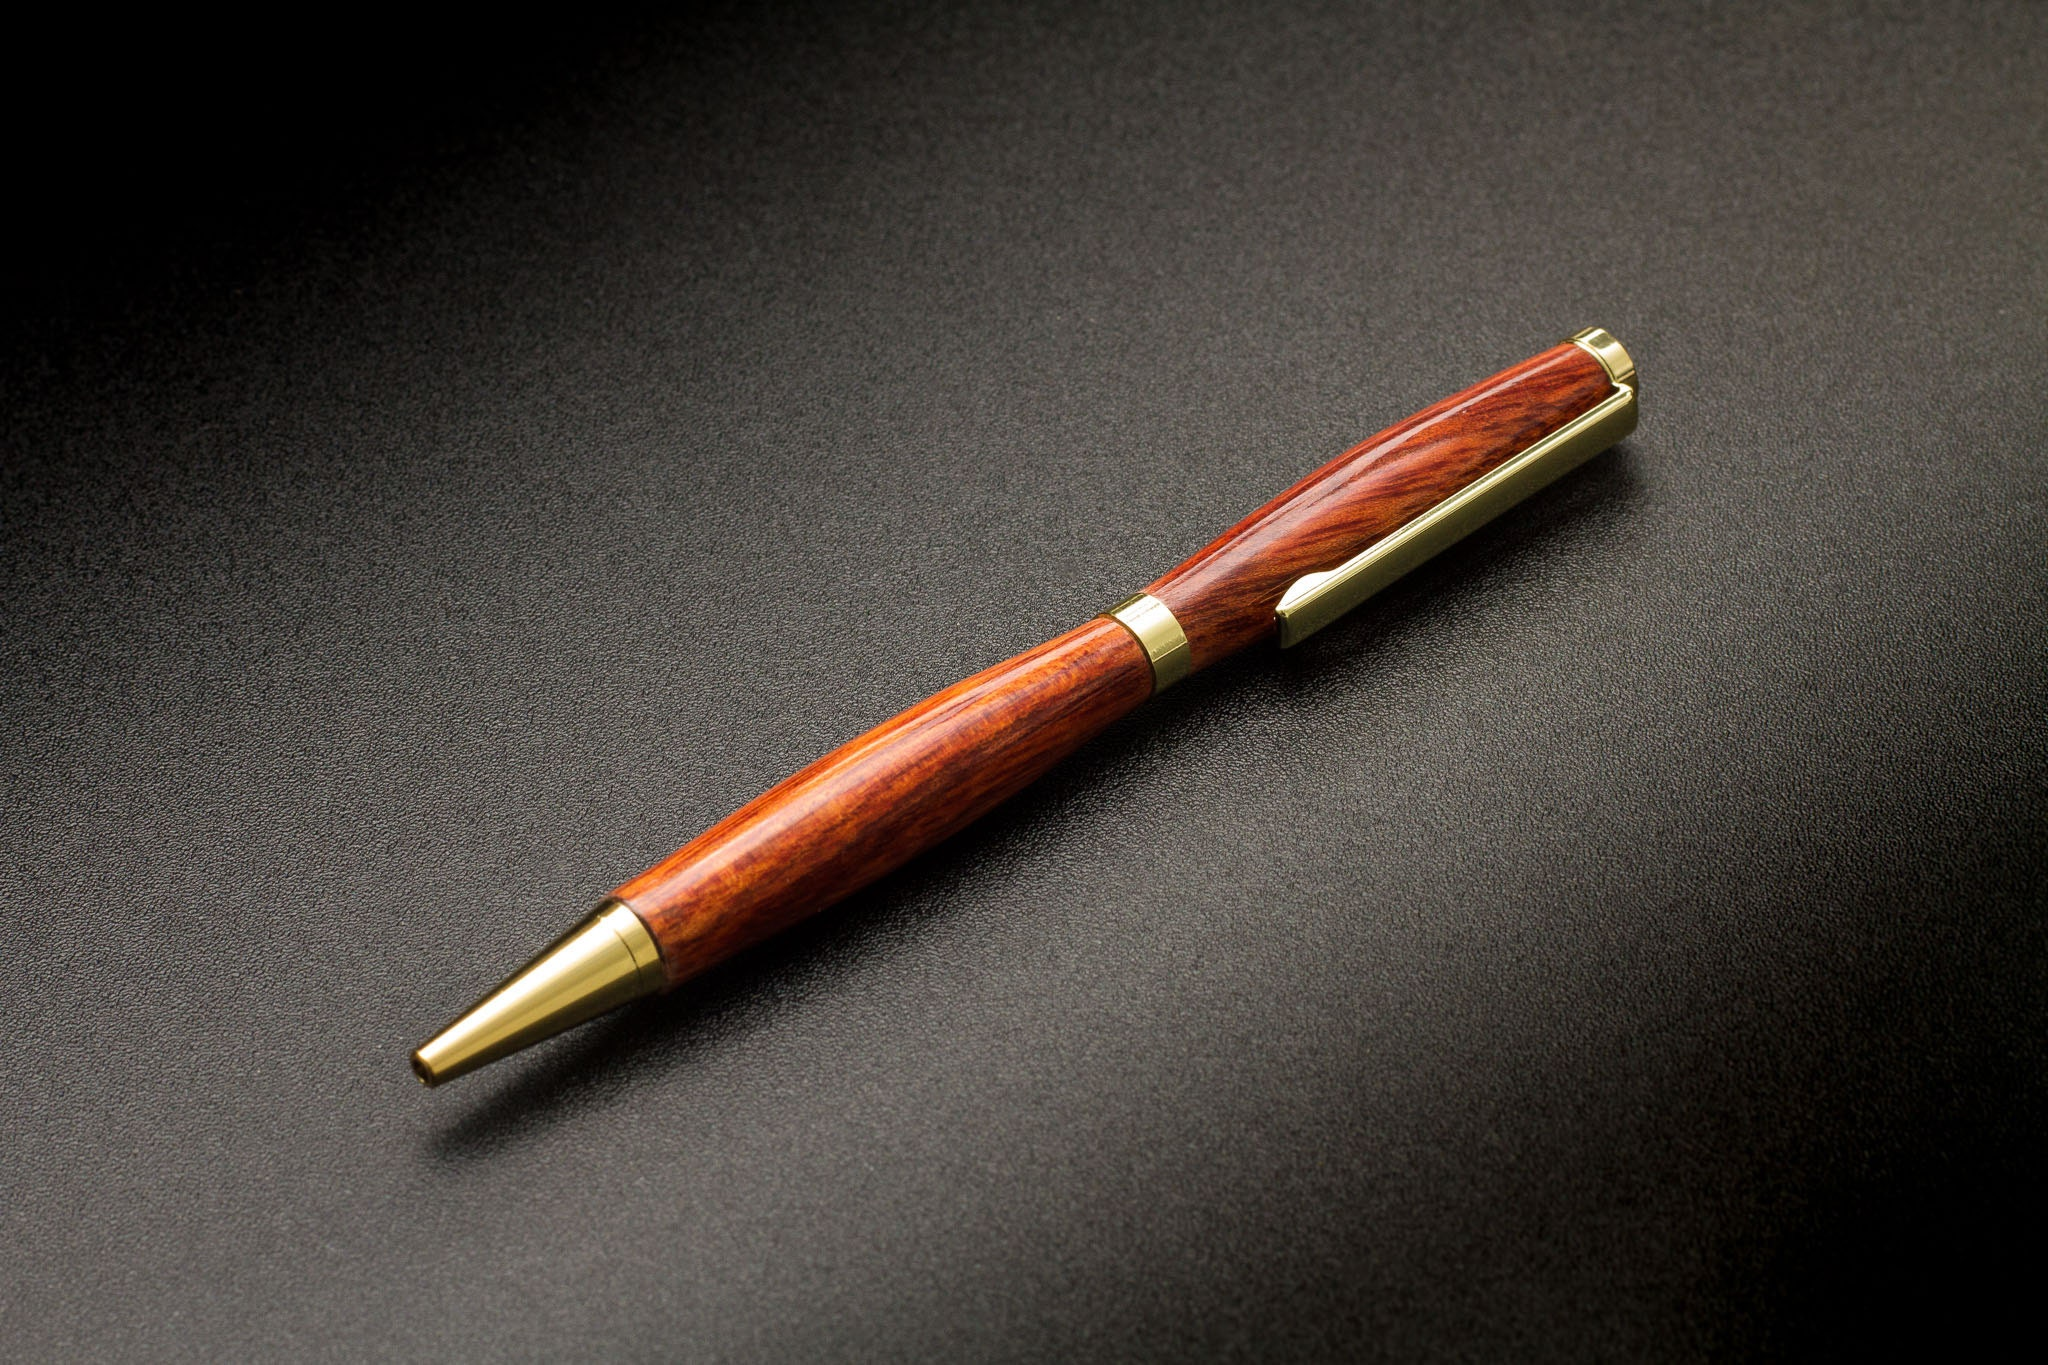 Bloodwood on a slimline pen by The Acadian.